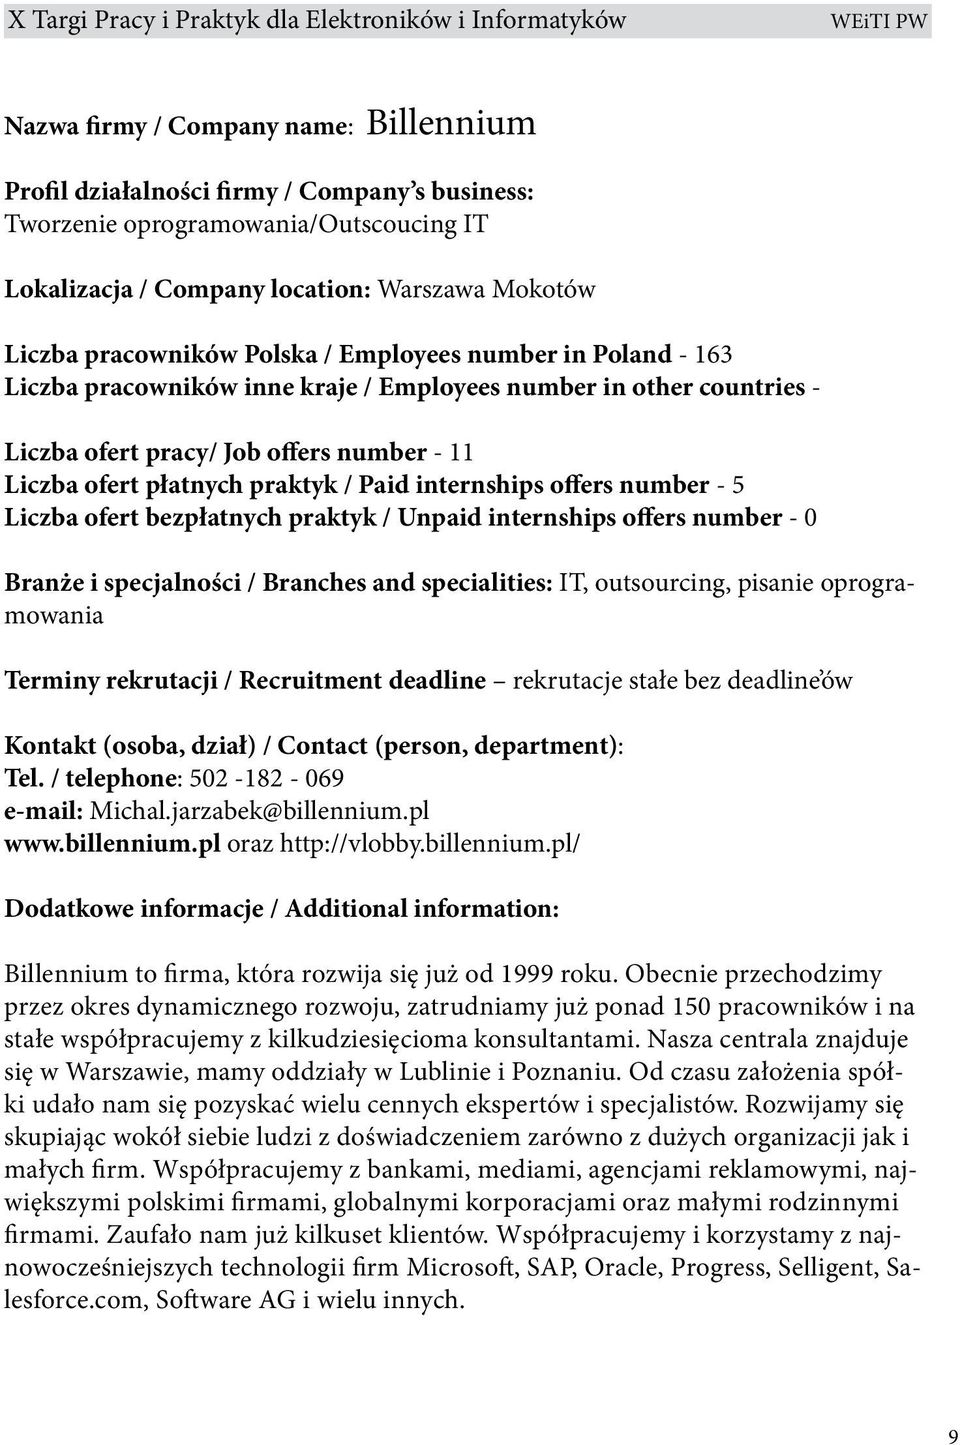 praktyk / Unpaid internships offers number - 0 Branże i specjalności / Branches and specialities: IT, outsourcing, pisanie oprogramowania Terminy rekrutacji / Recruitment deadline rekrutacje stałe